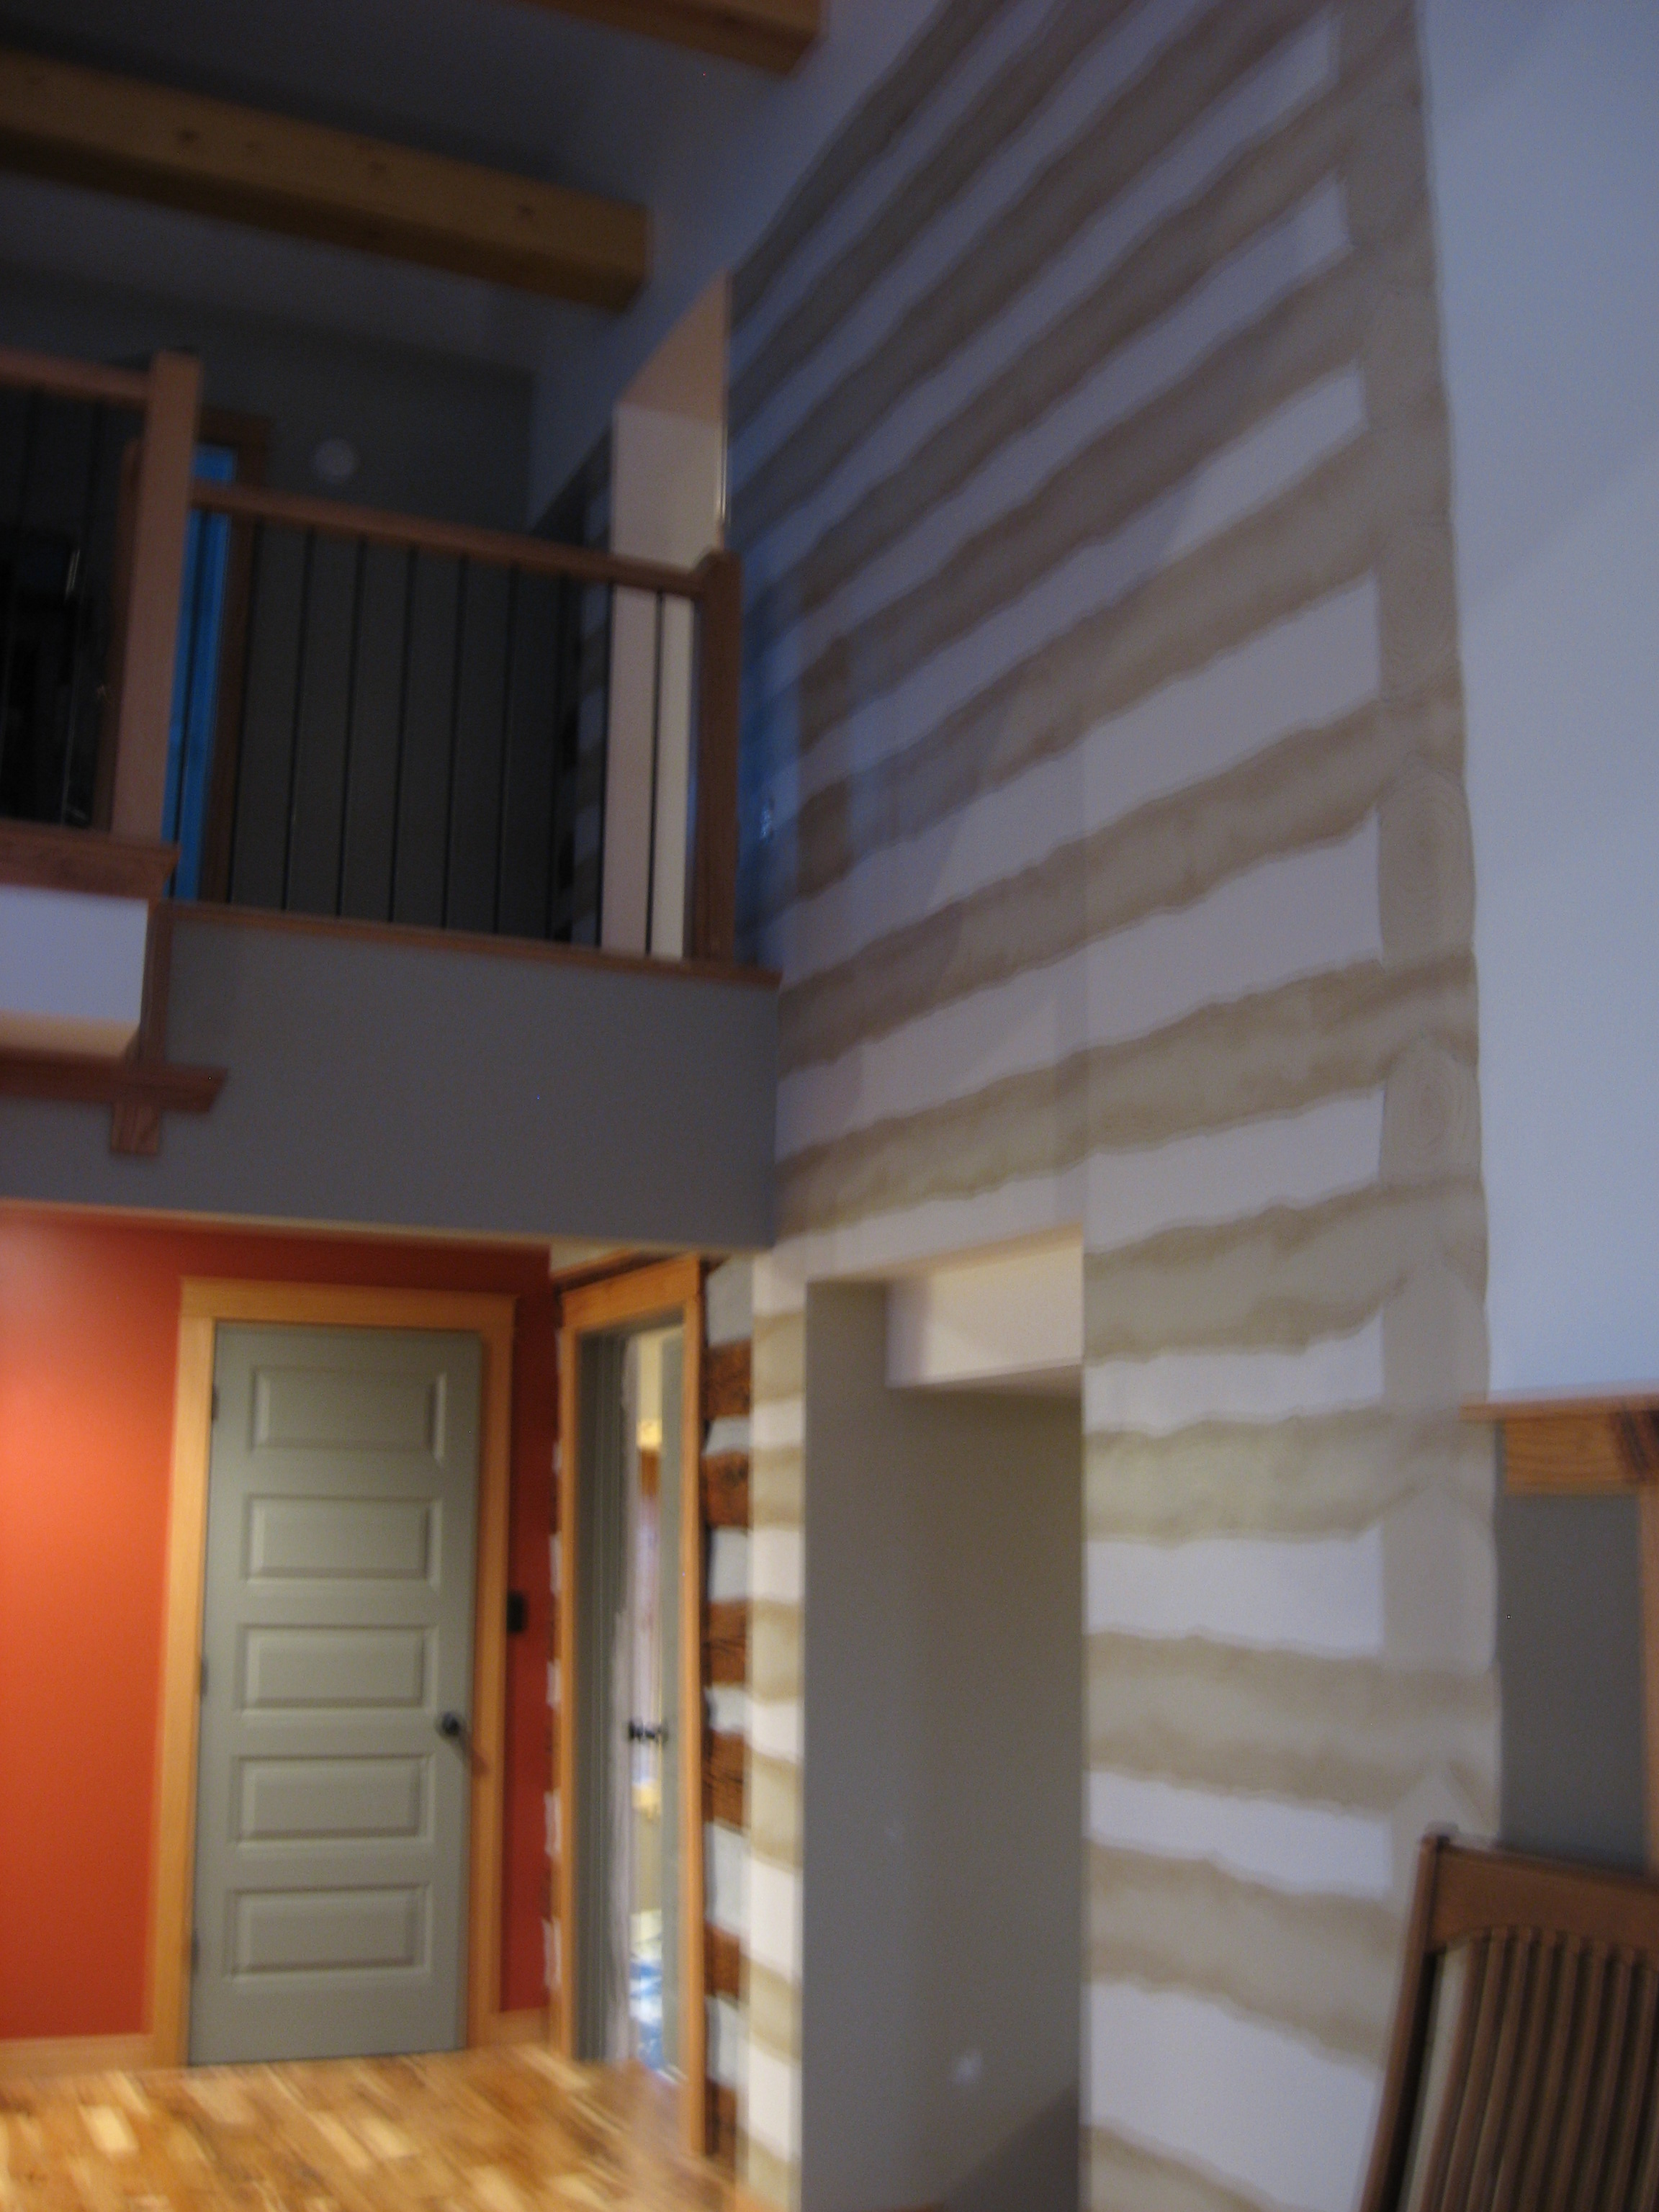 After:  a section of the actual log wall has been left visible next to the trompe l'oeil.